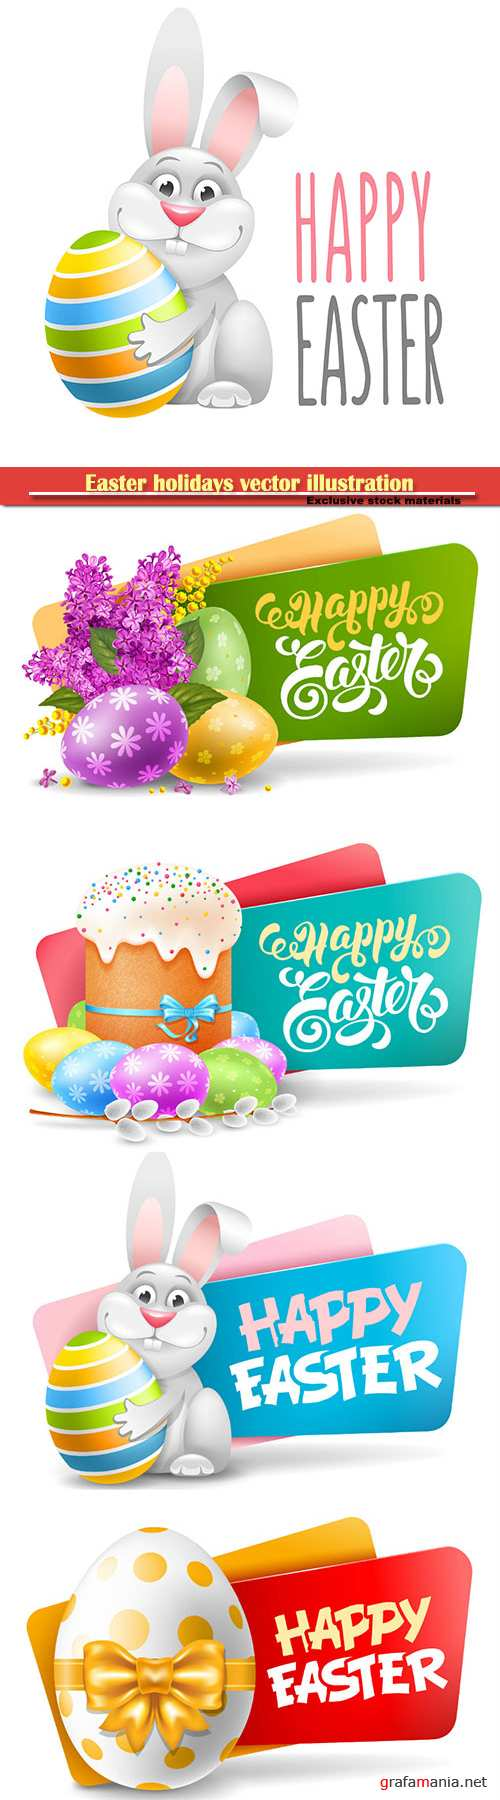 Easter holidays vector illustration, spring flowers card design template